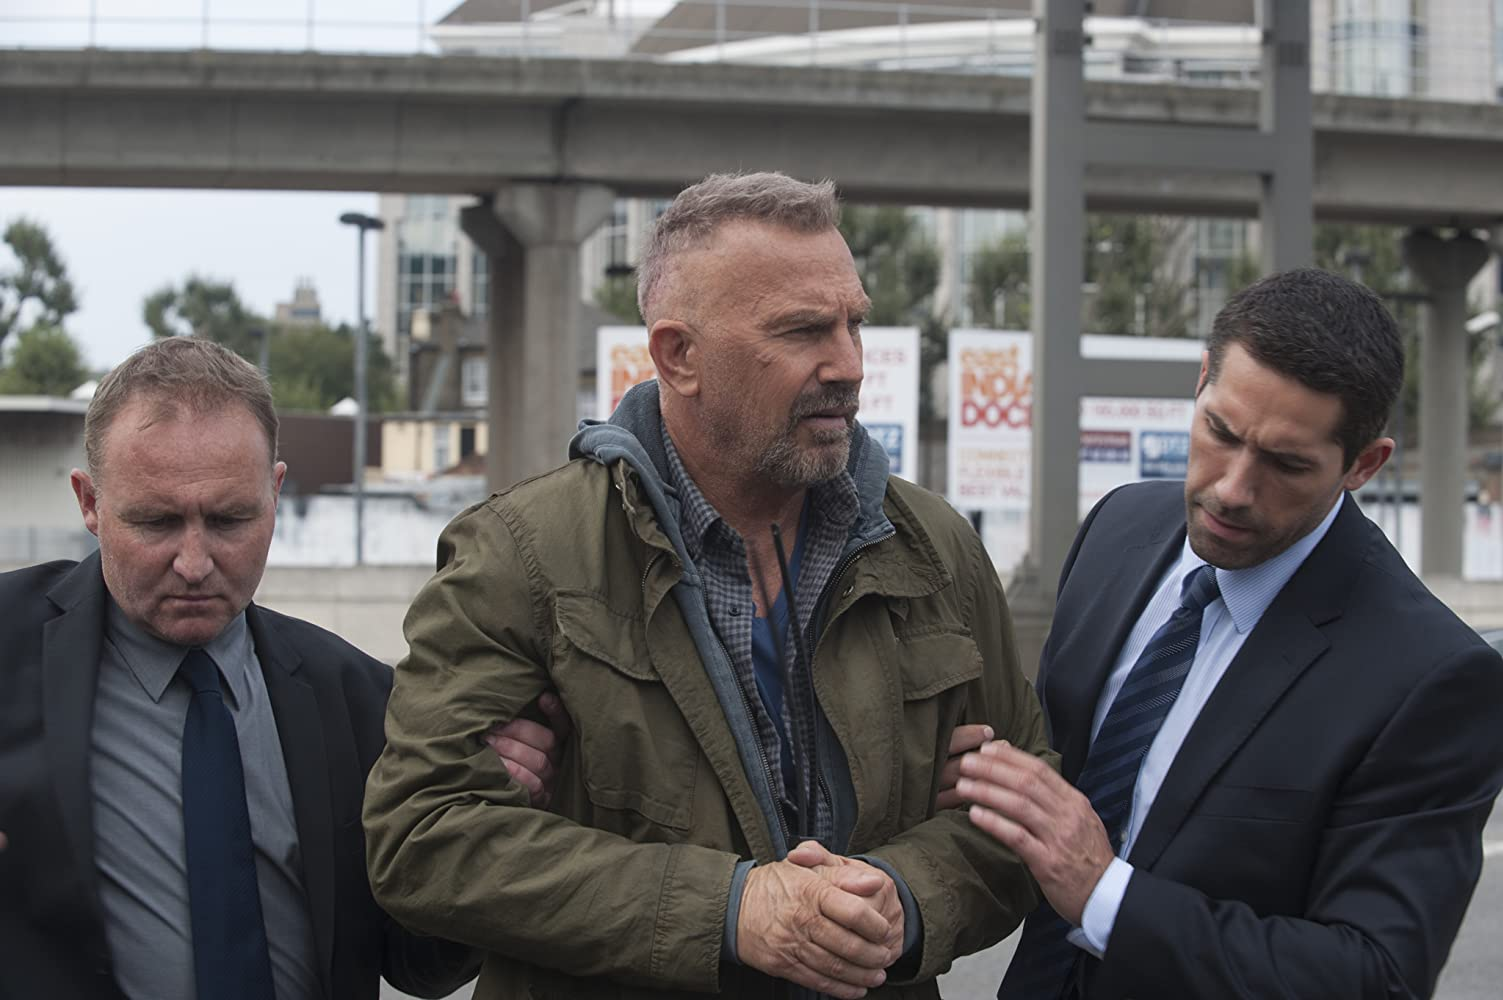 Kevin Costner and Scott Adkins in Criminal (2016)